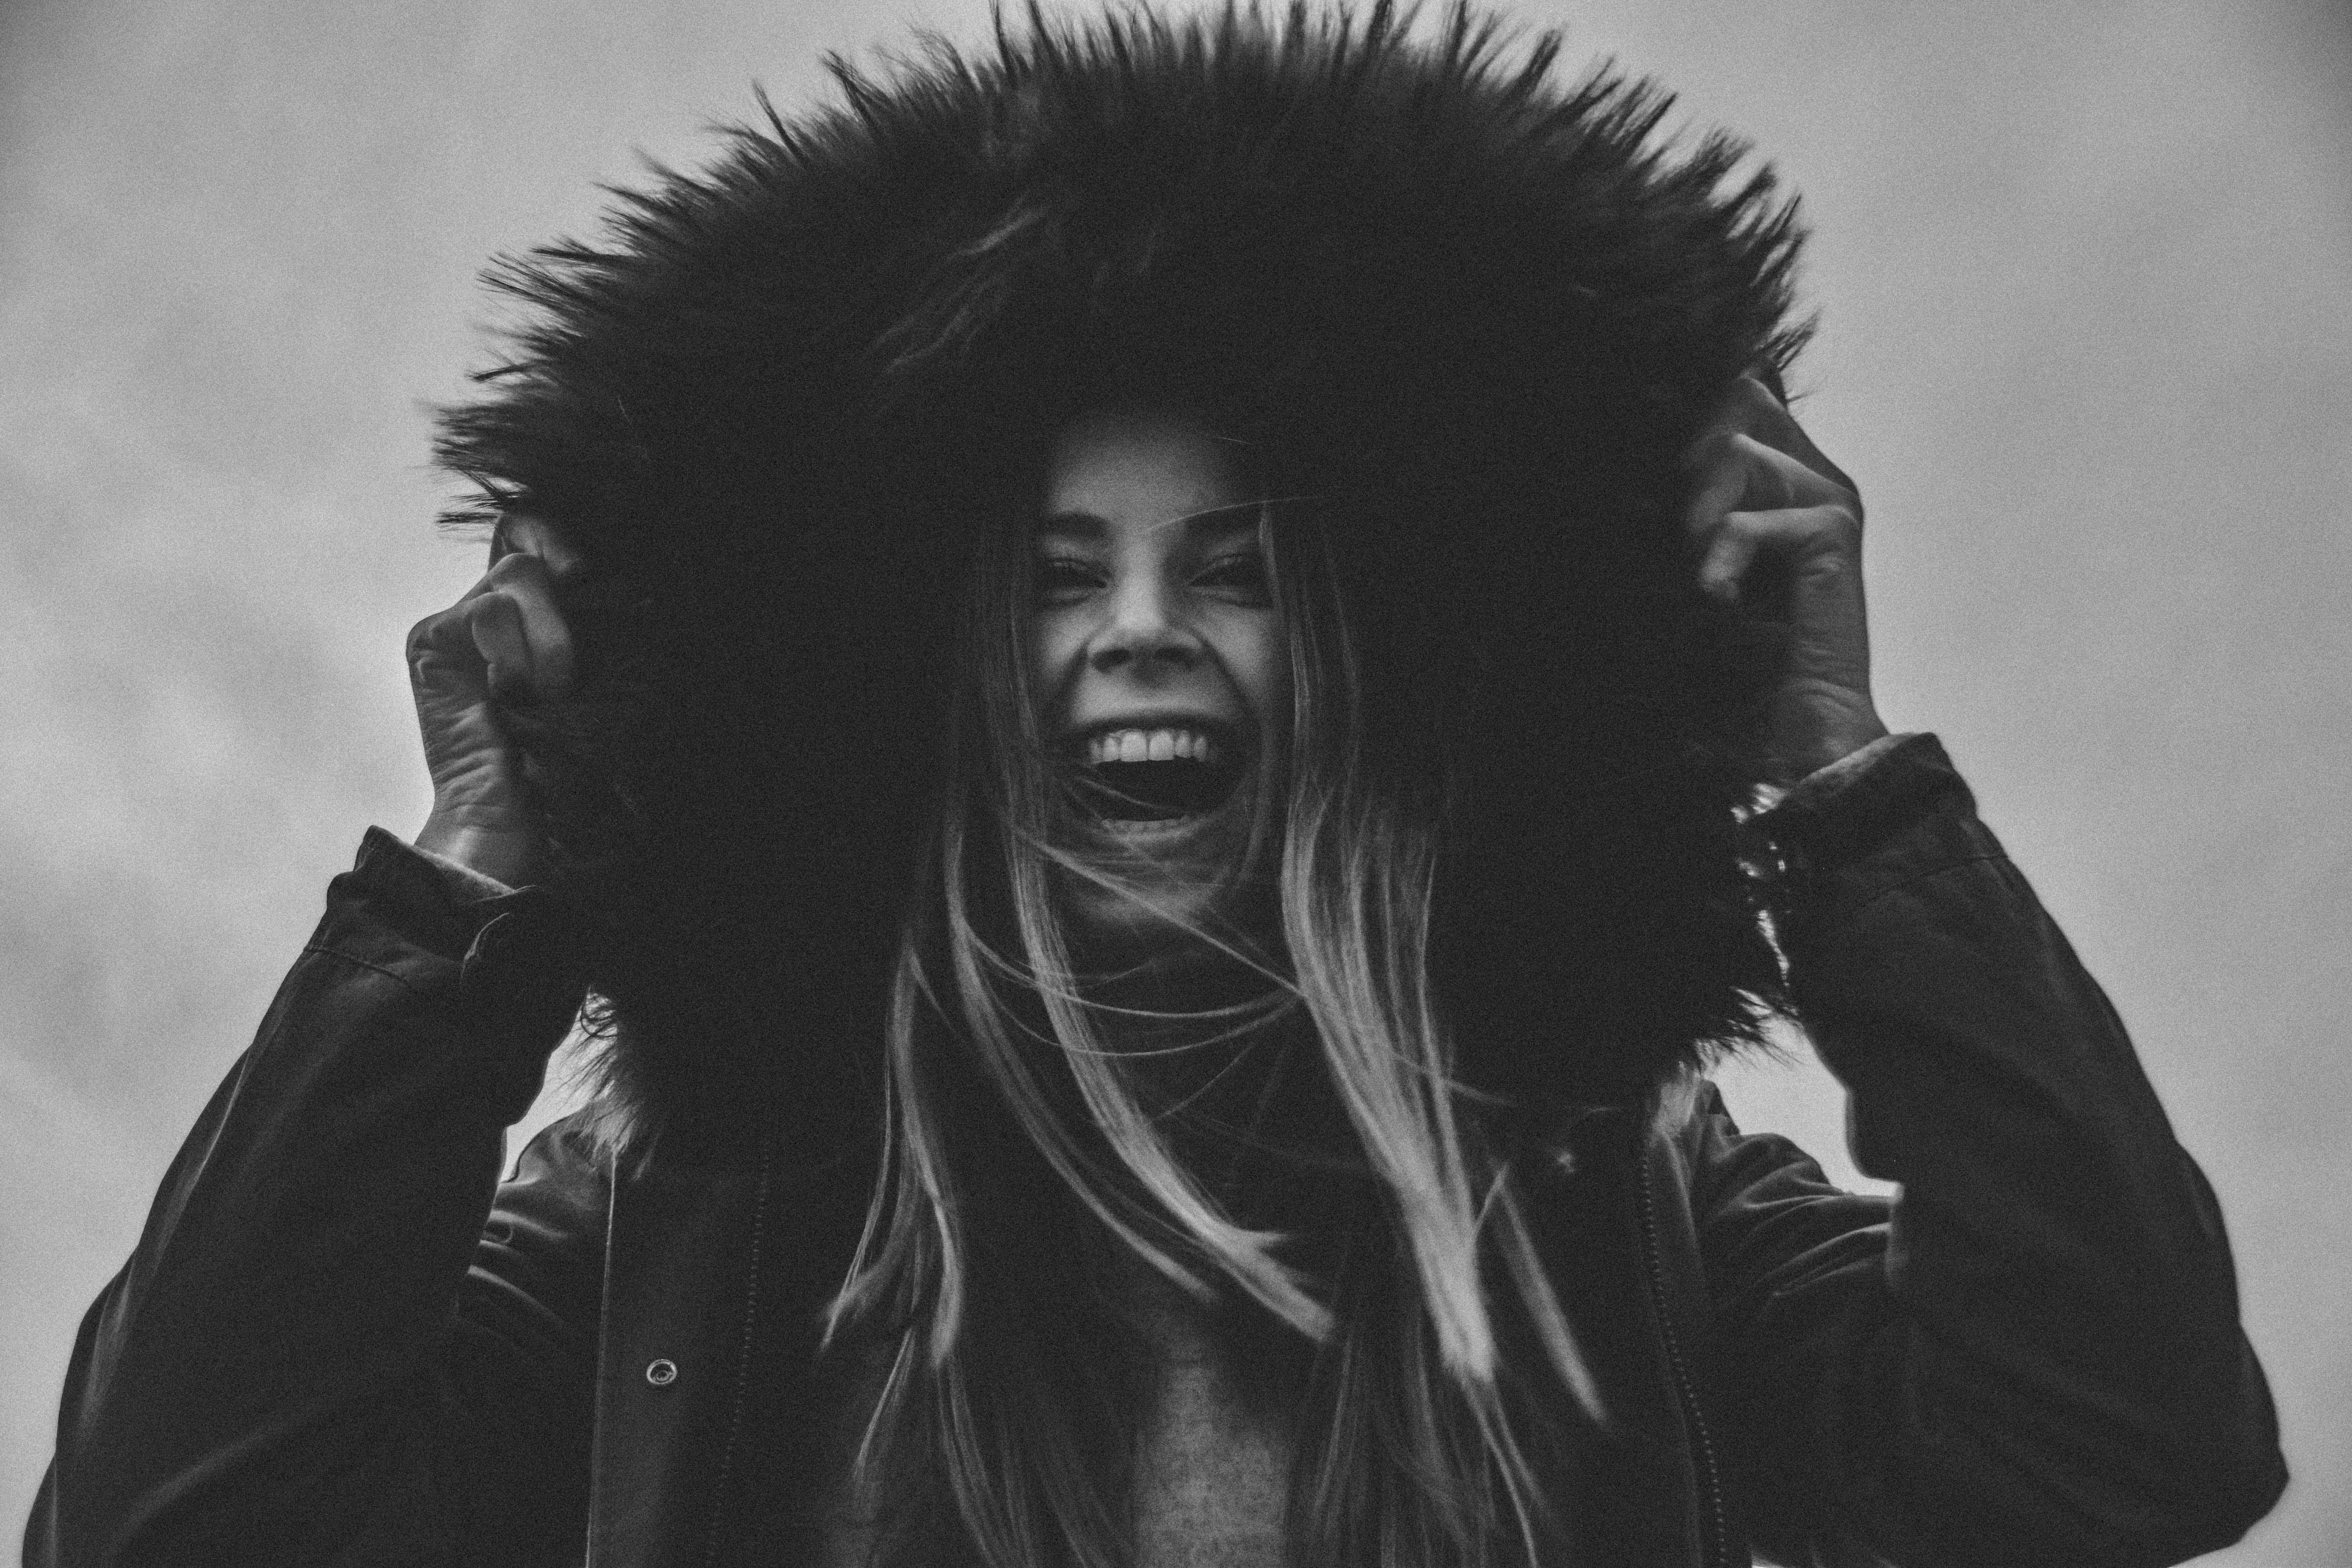 Grayscale Photo of Laughing Woman Holding Her Hat